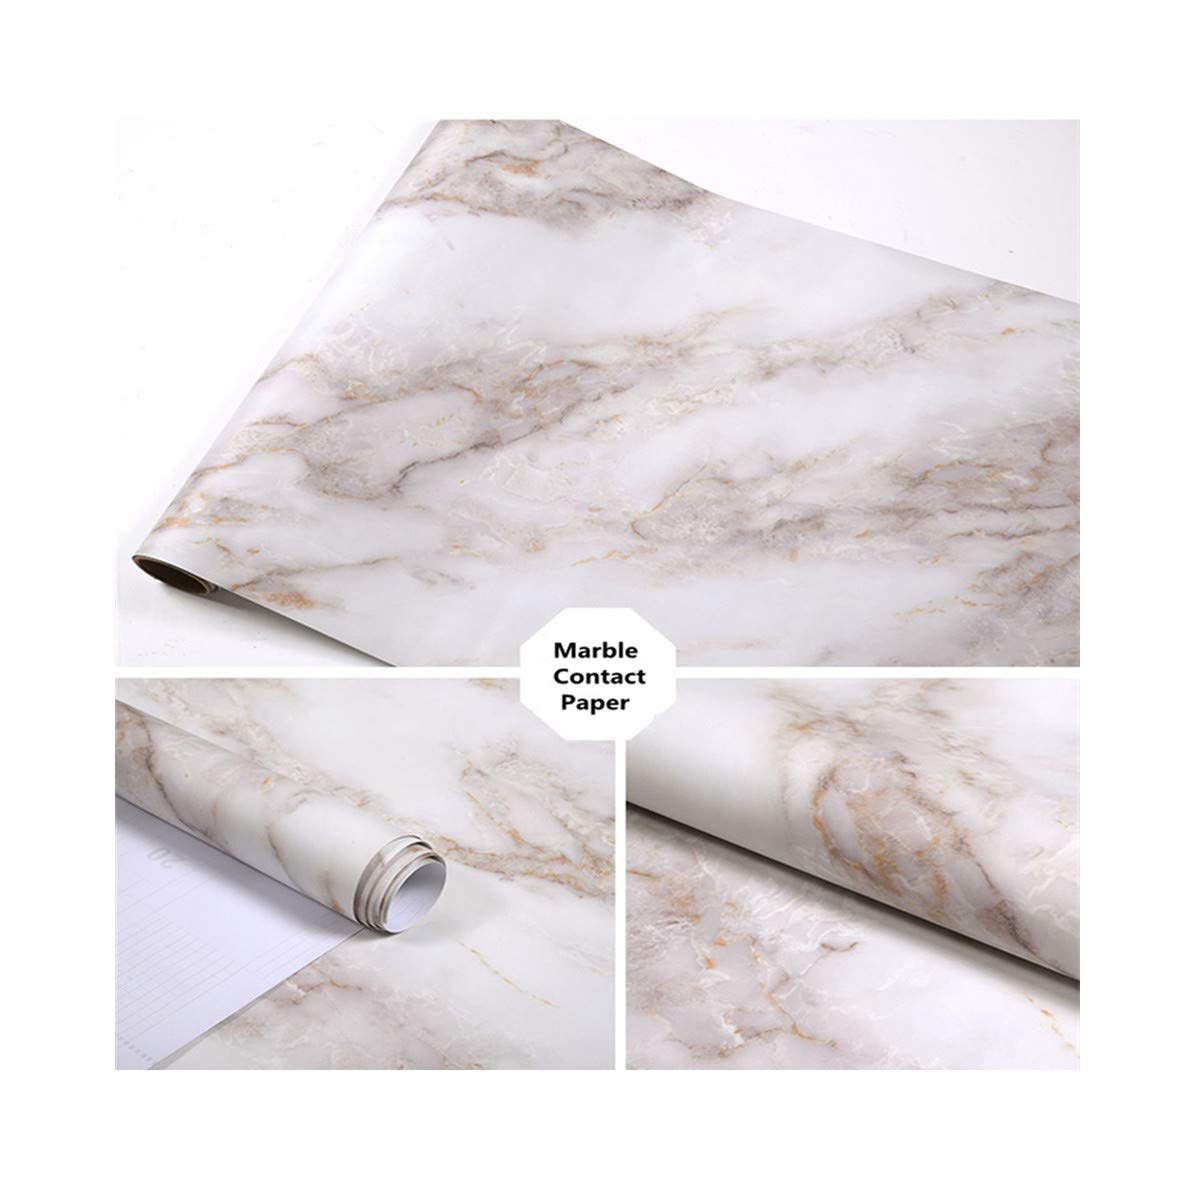 17.71'' x 120'' Marble Contact Paper Film Peel and Stick Countertops Vinyl Wallpaper Sticker Thick Waterproof Self Adhesive Removable Authentic White Granite Look Contact Paper Decorative Shelf Liners